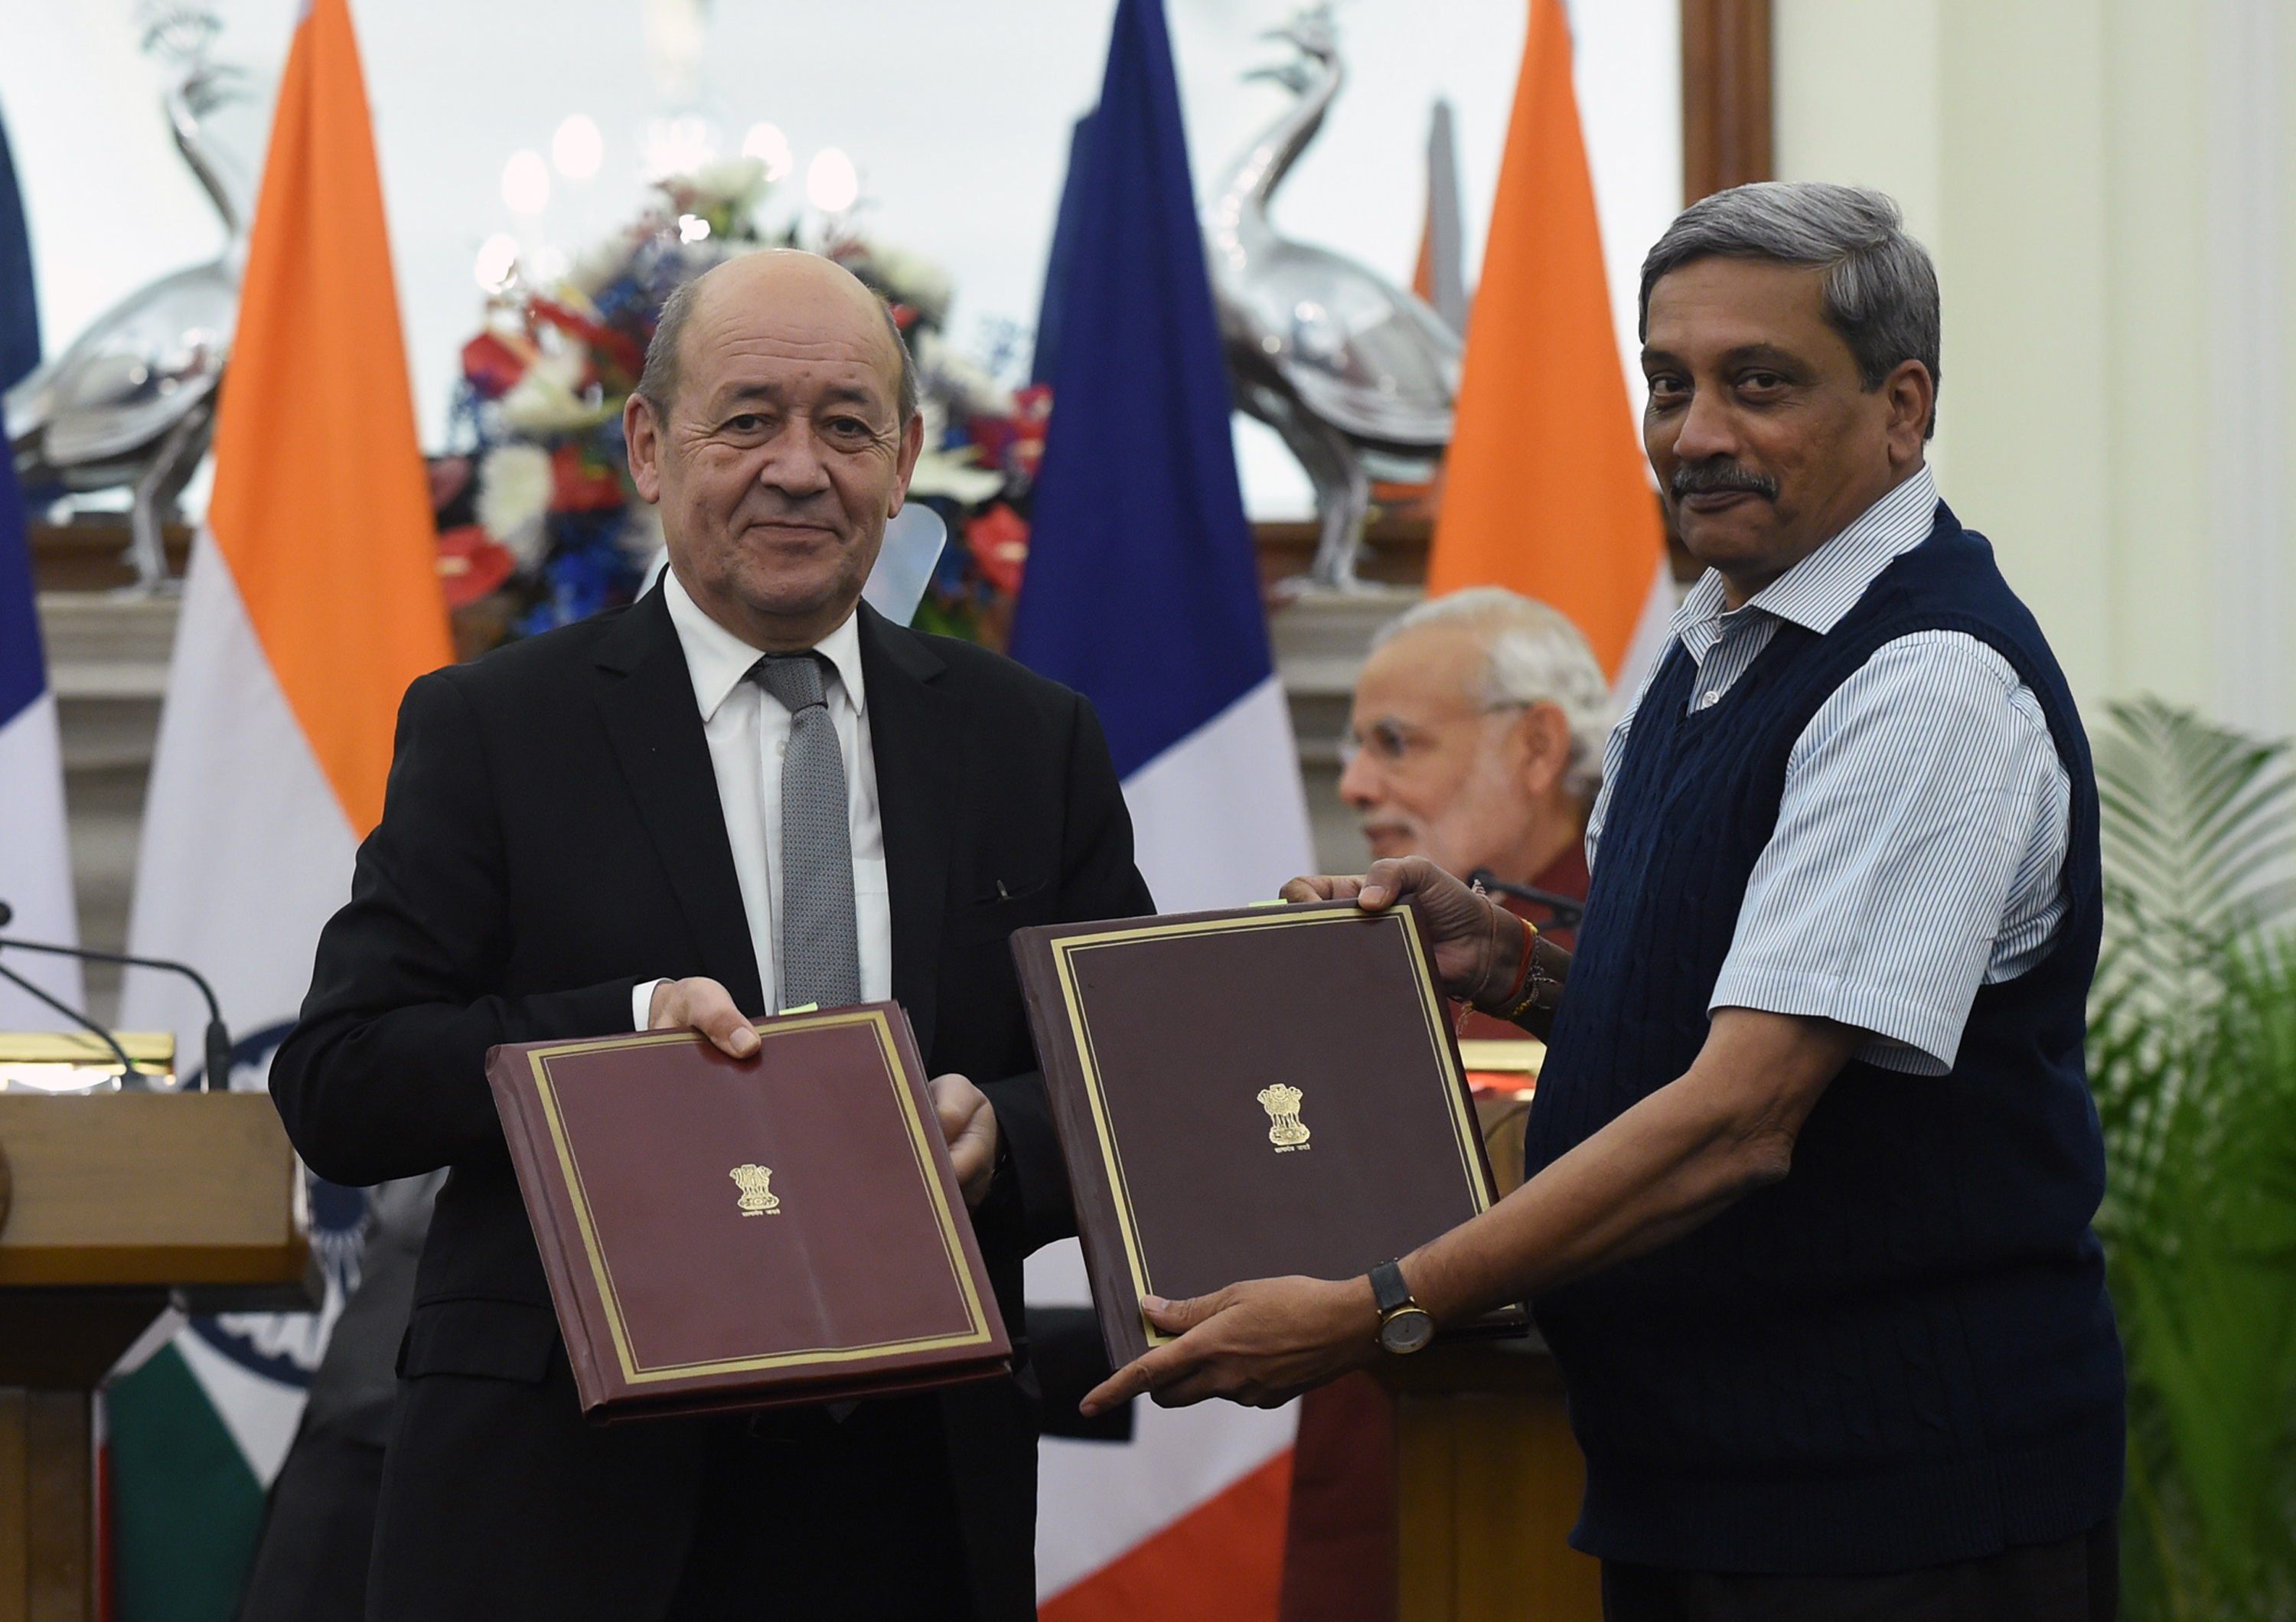 INDIA-FRANCE-DIPLOMACY